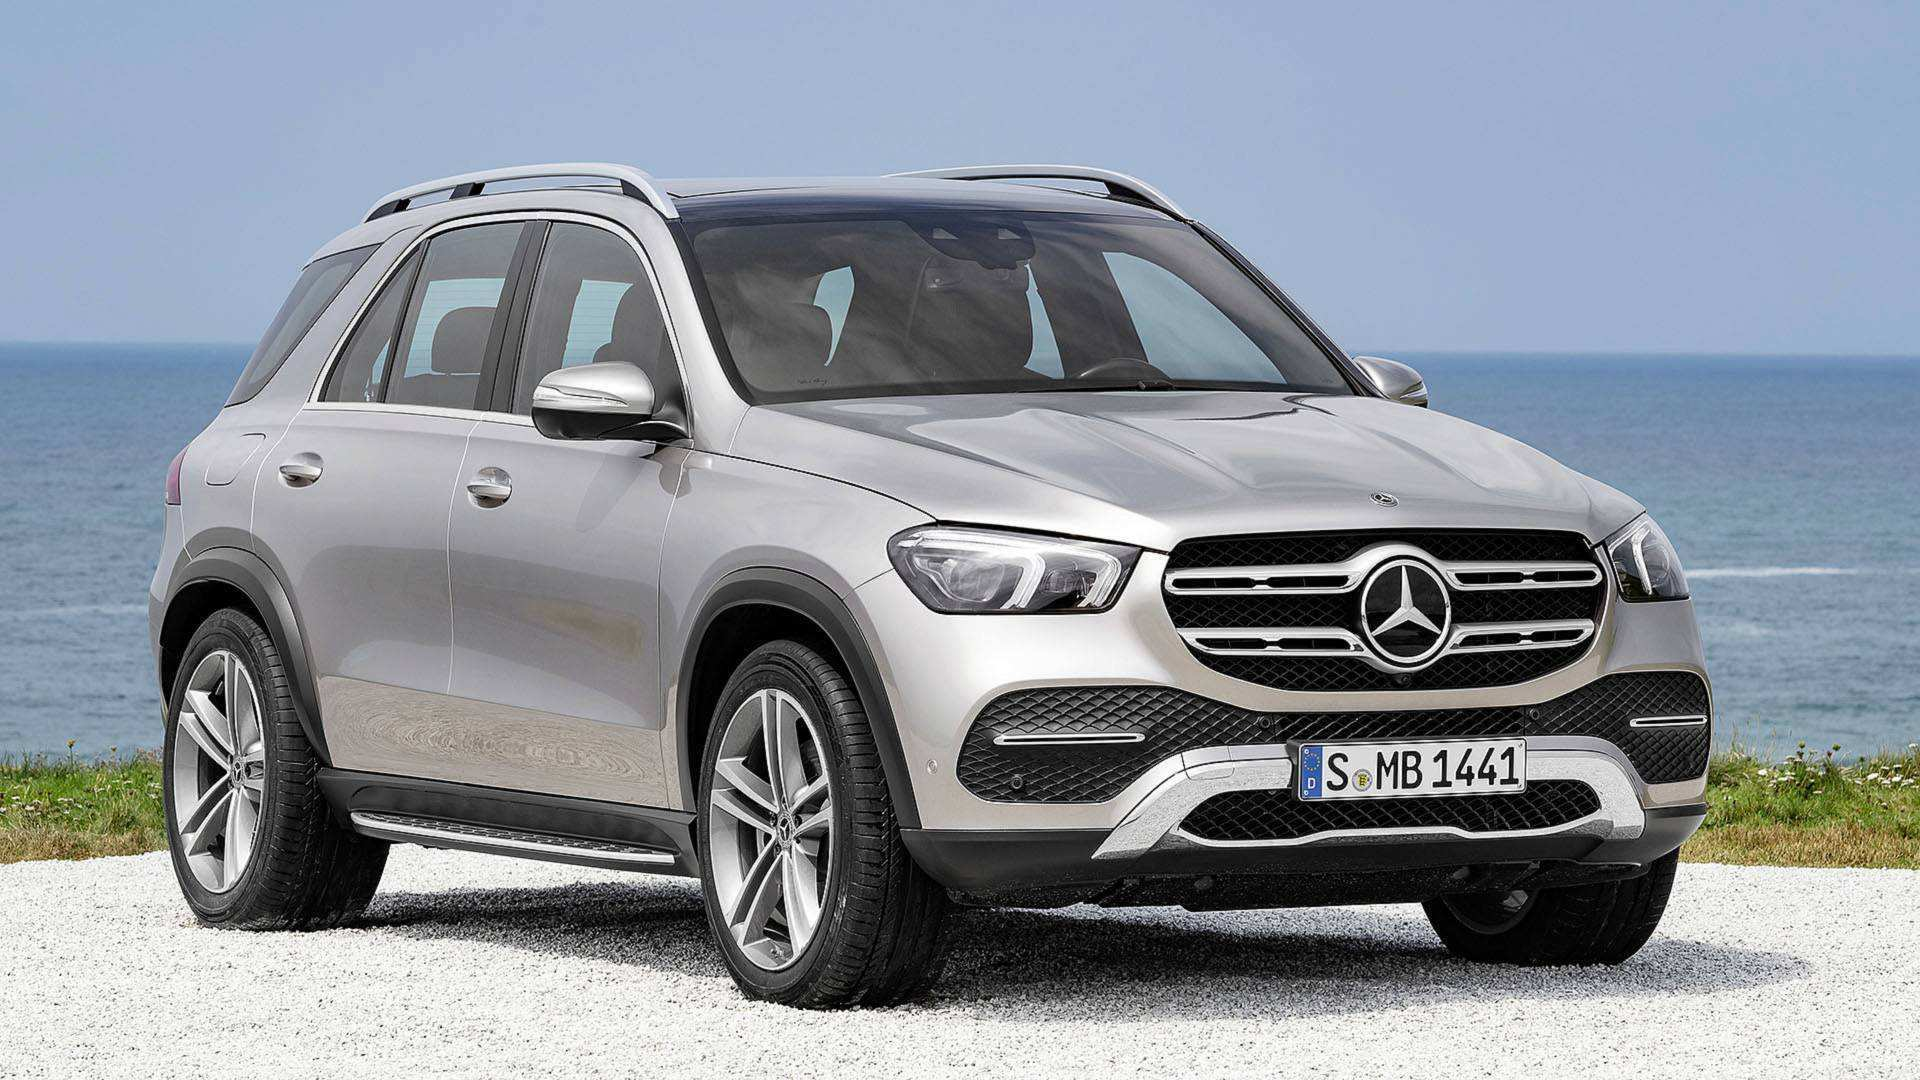 81 The Best Mercedes Drivers 2019 Exterior Reviews for Best Mercedes Drivers 2019 Exterior